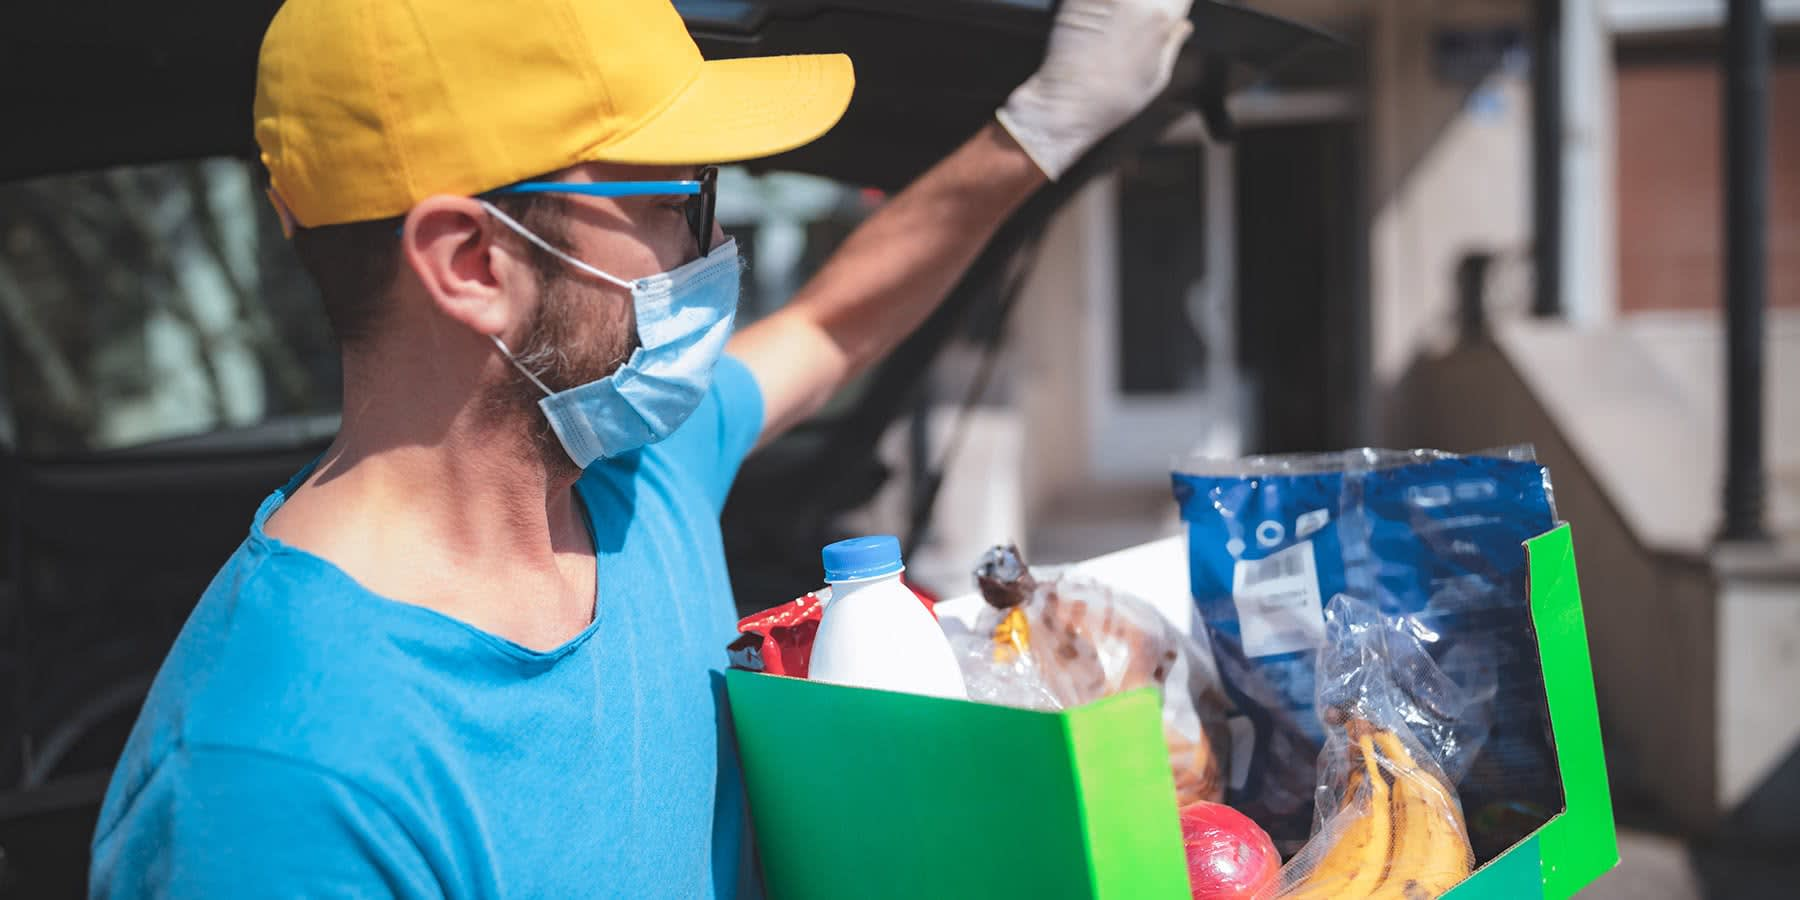 Man delivering a package of food with a mask and gloves on for social distancing